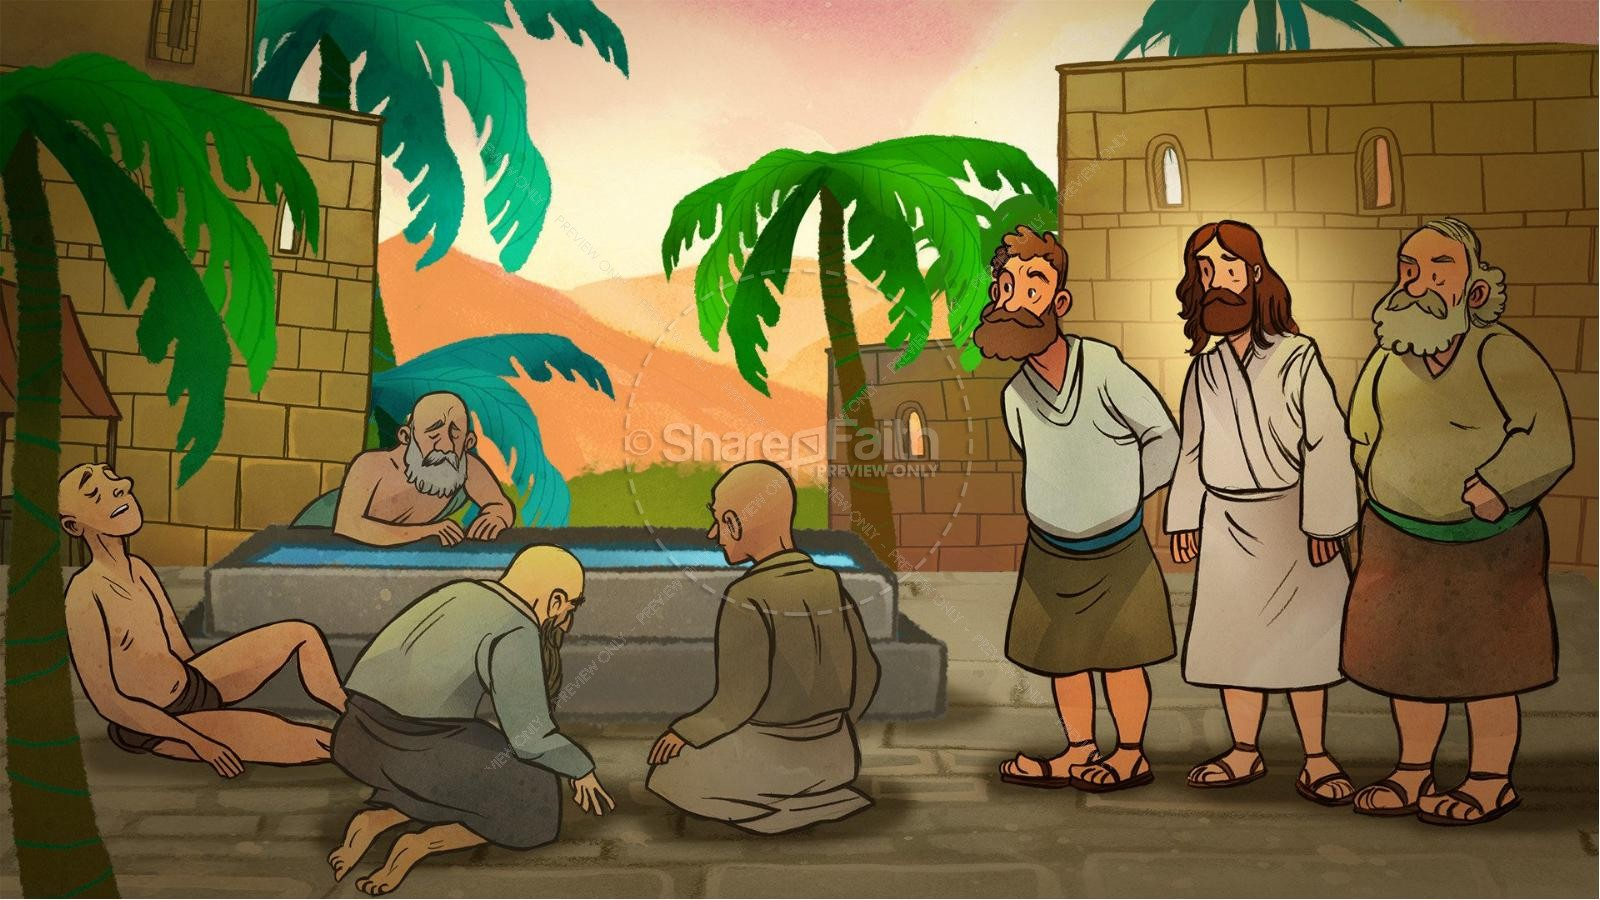 john 5 pool of bethesda kids bible stories kids bible stories